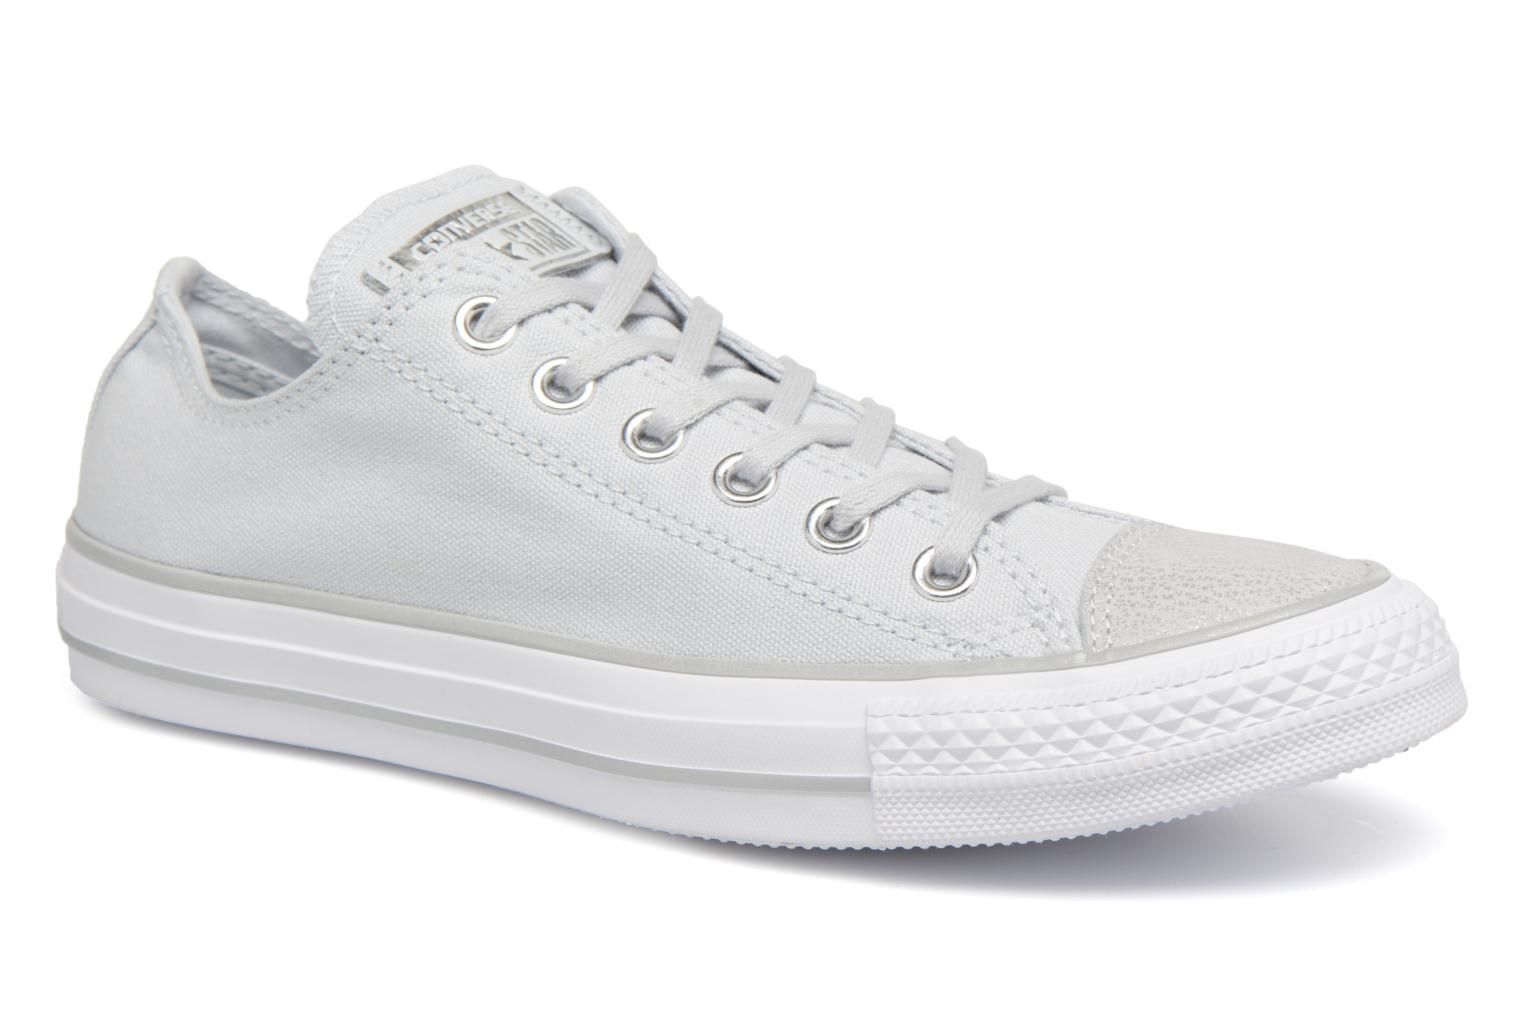 Super Promos Converse Chaussures CHUCK TAYLOR ALL STAR OX TIPPED METALLIC Emplacements Sortie Prix Pas Cher 3Pj08a